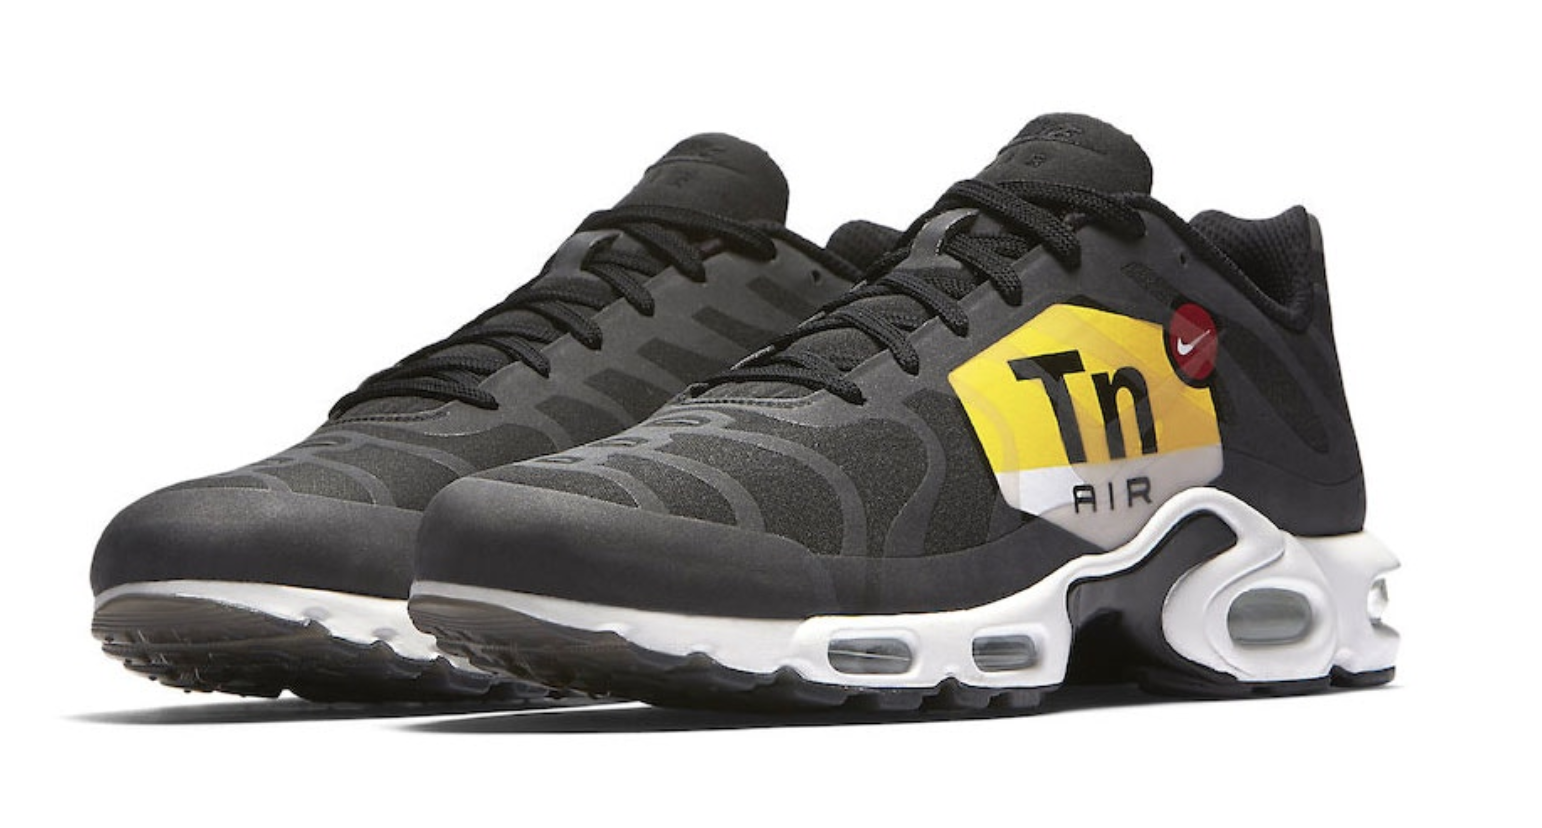 Nike Air Max Big Logo Collection – Quick Look and Release Info1